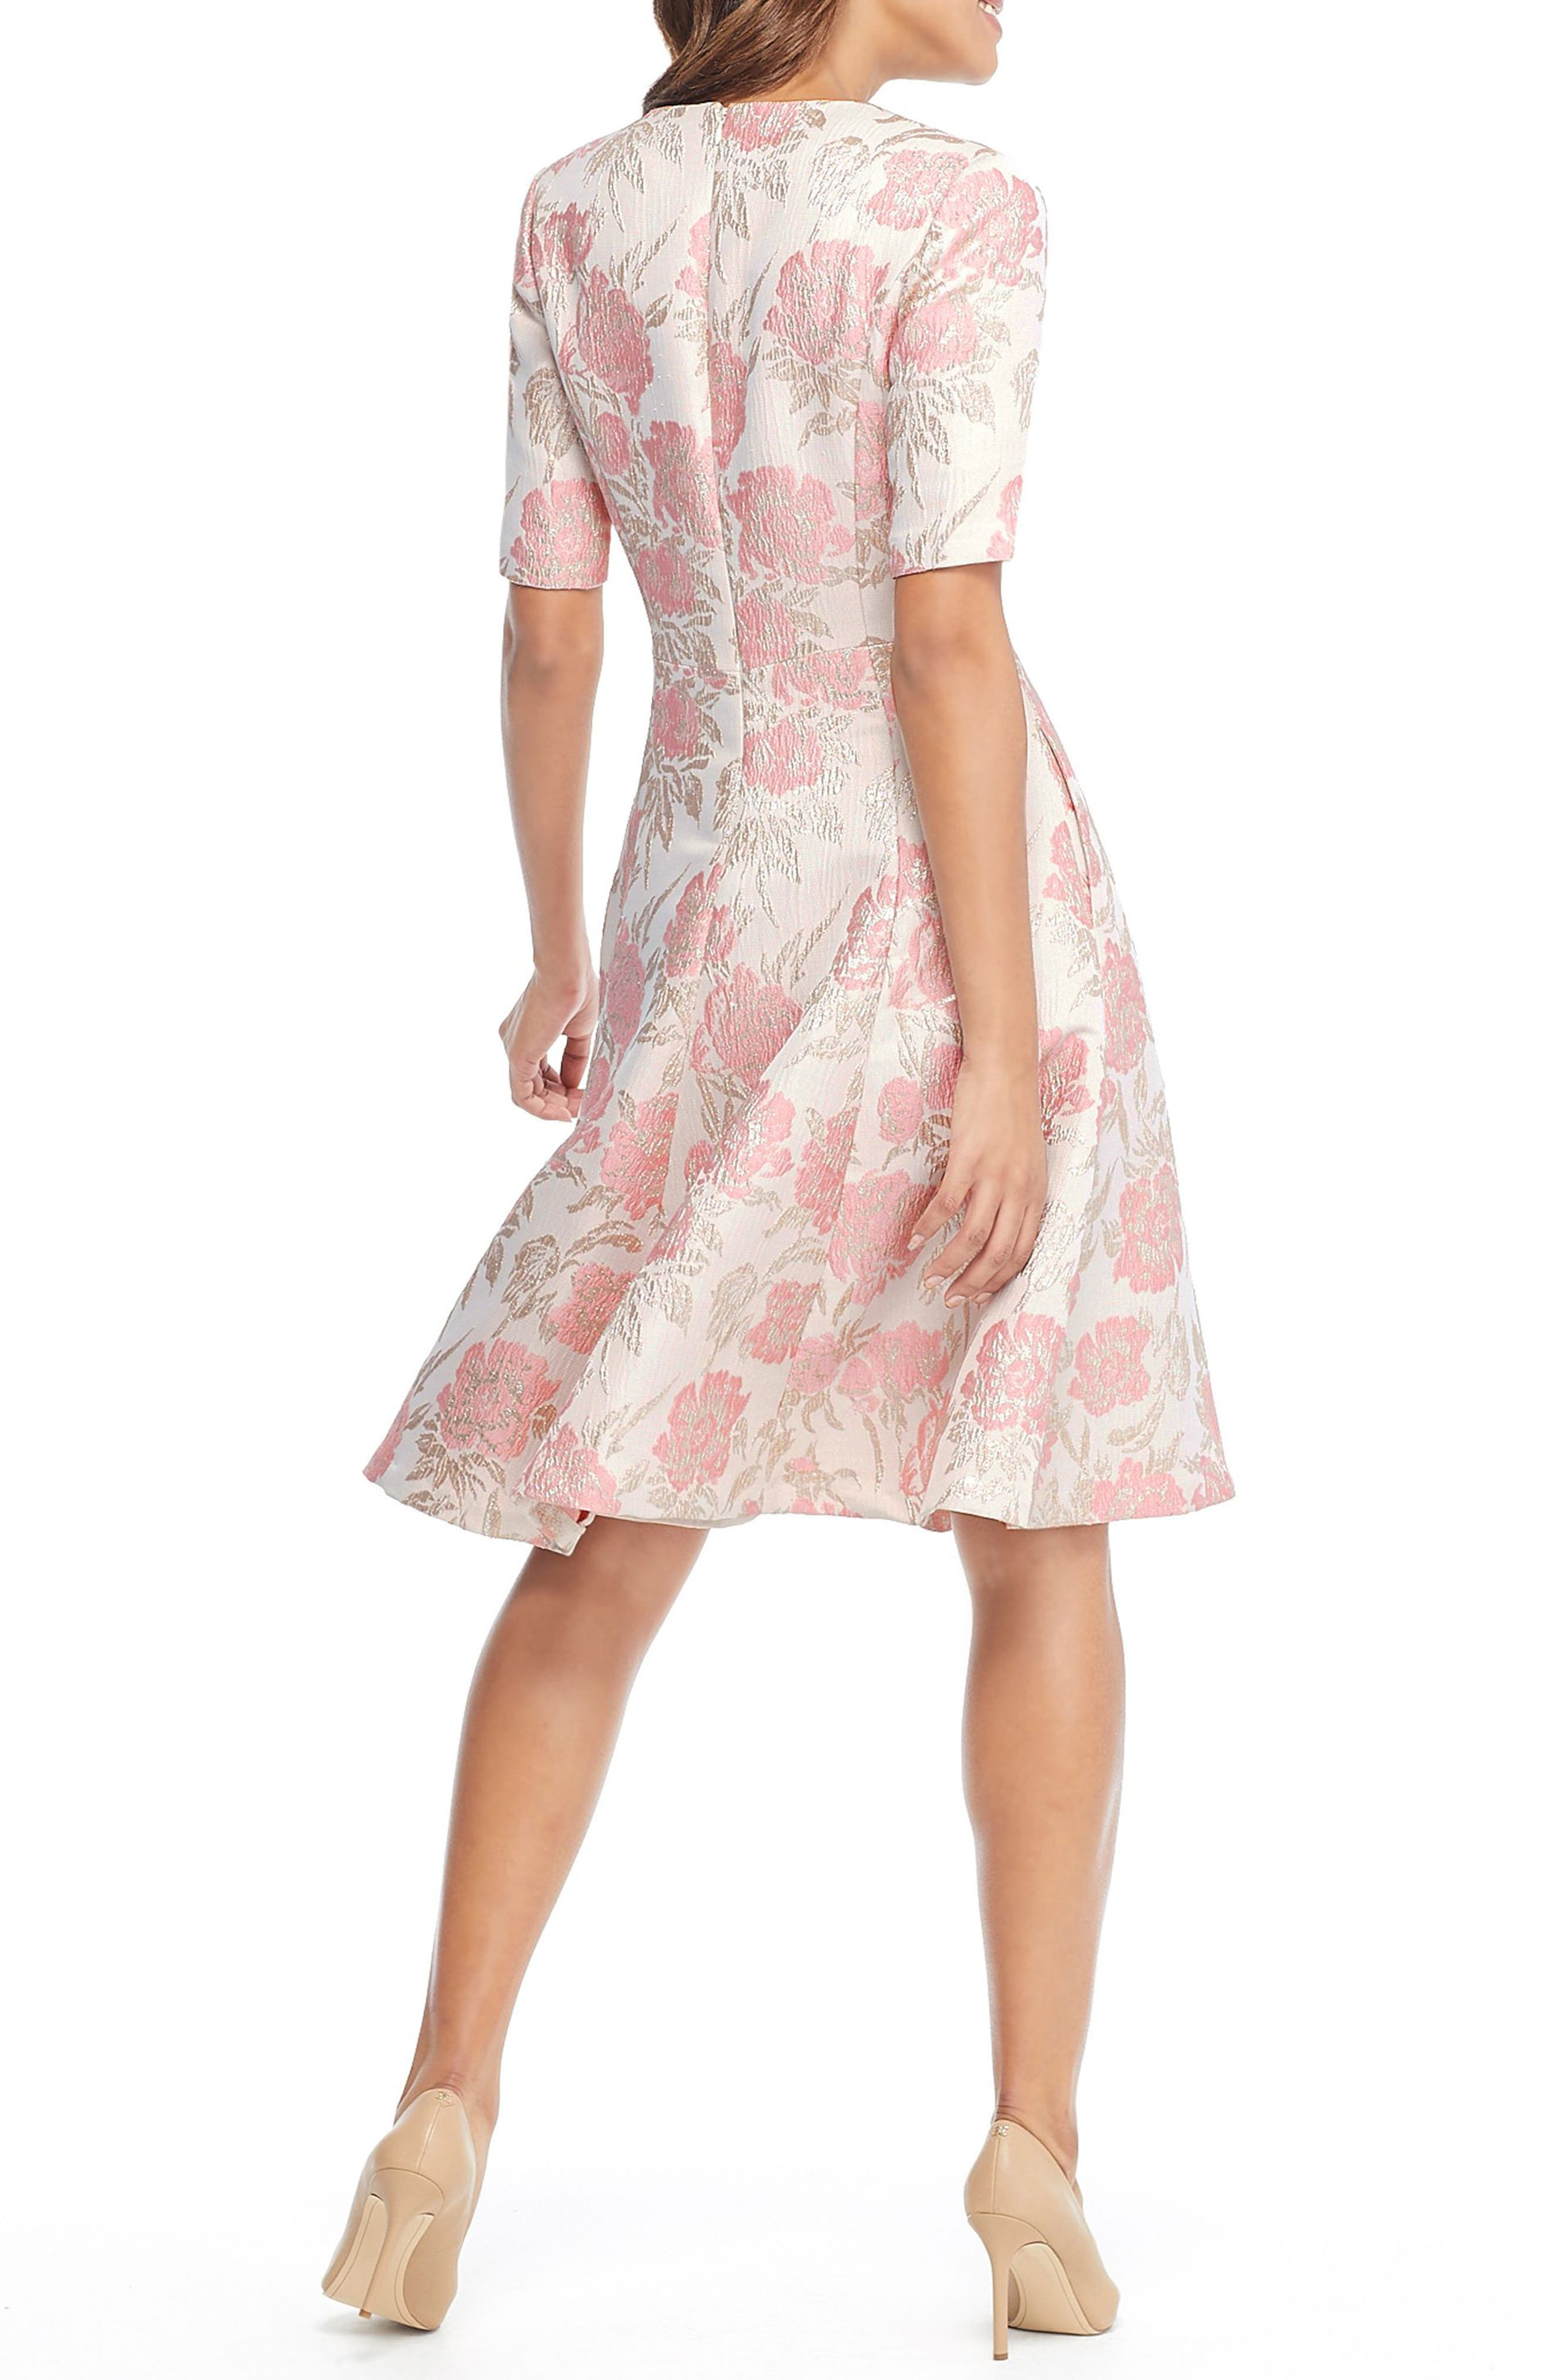 GAL MEETS GLAM COLLECTION, Adair Pink Passion Rose Jacquard Fit & Flare Dress, Alternate thumbnail 4, color, 685